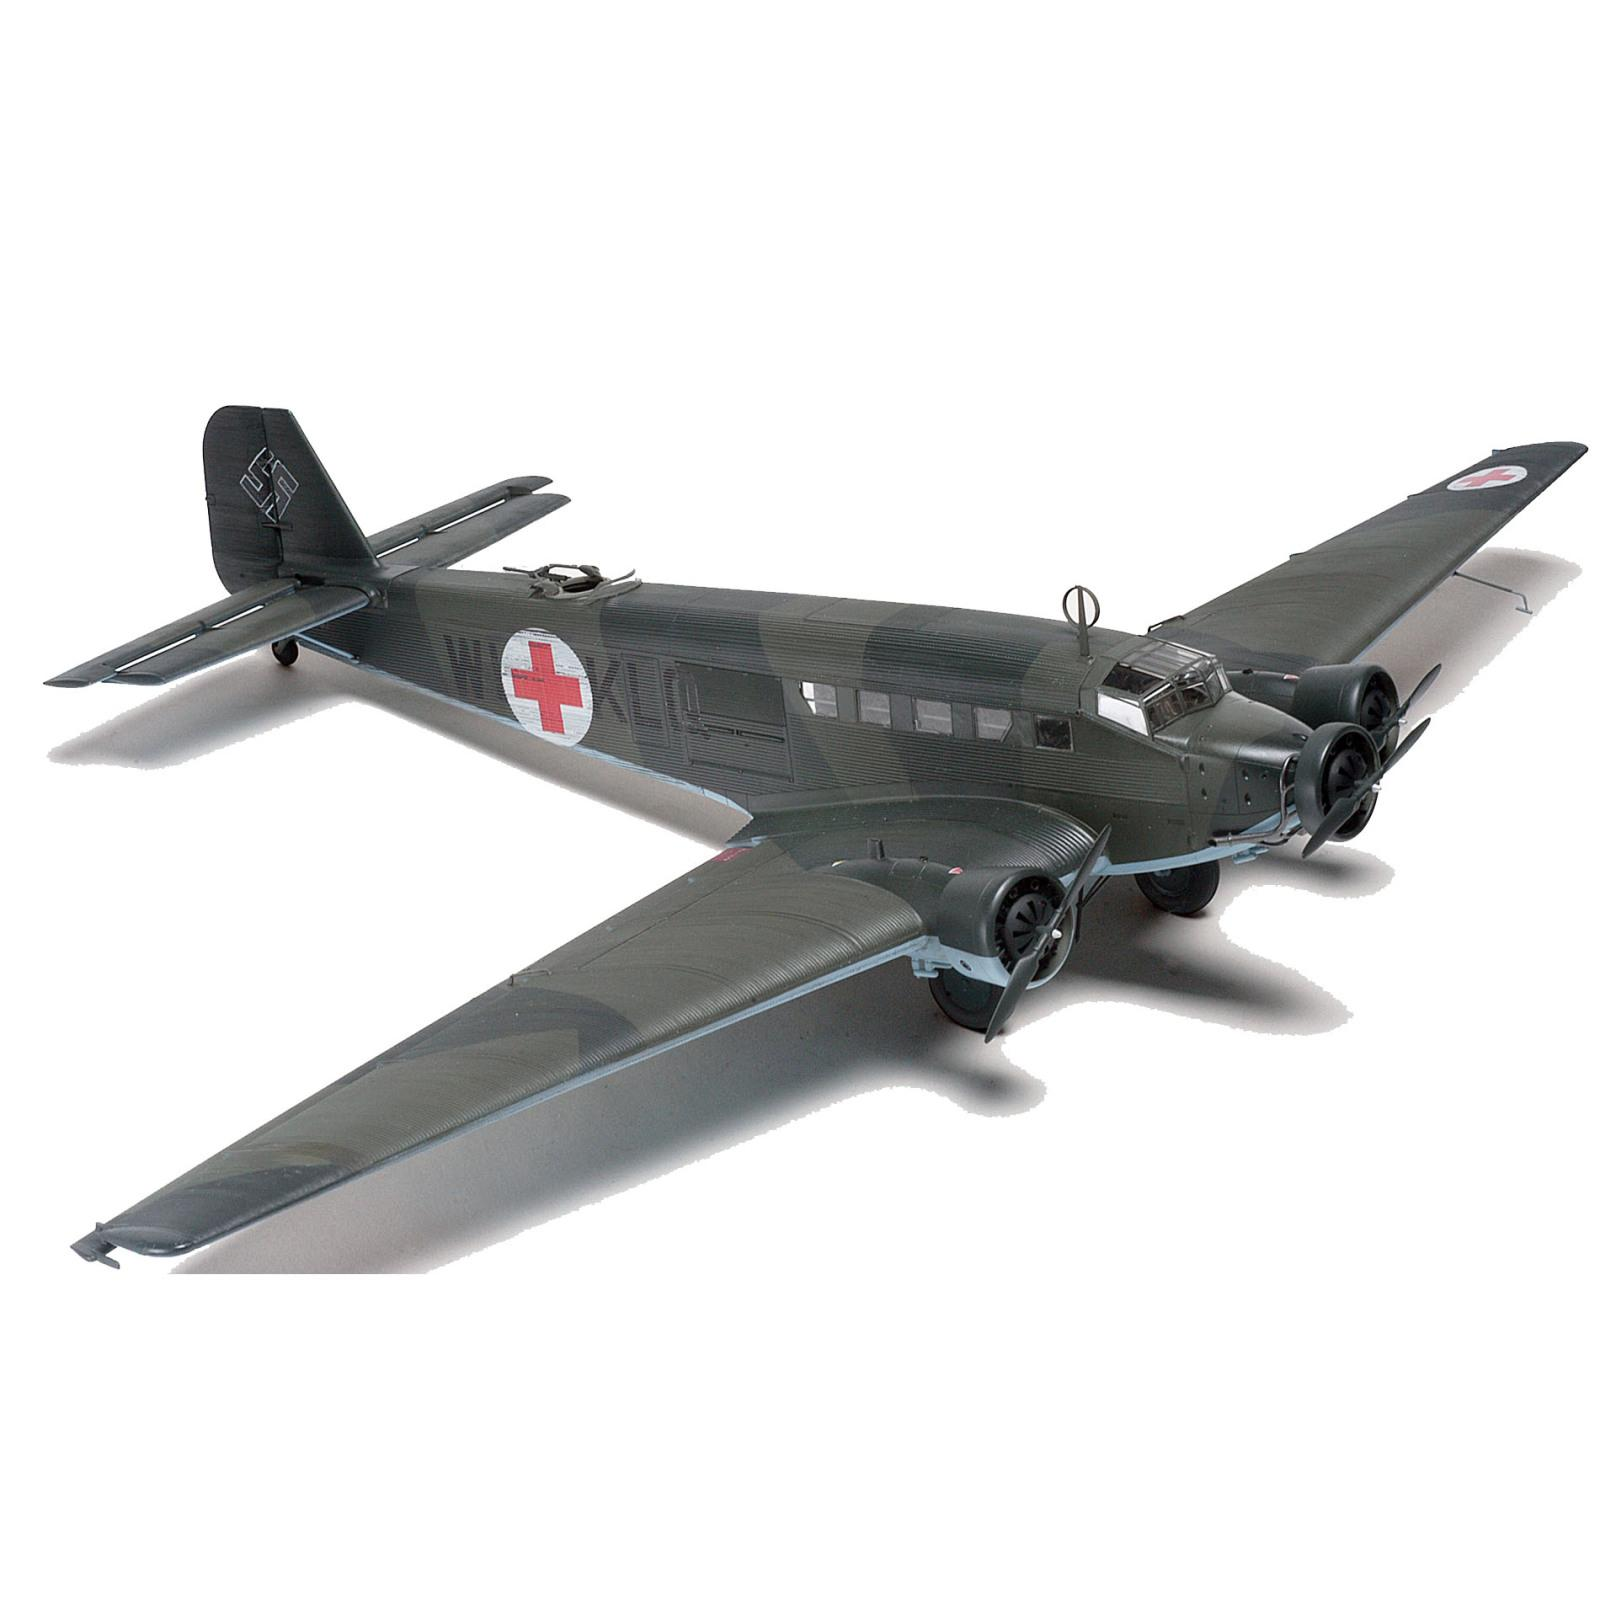 Revell 1:48 Scale JU52 3M Transport